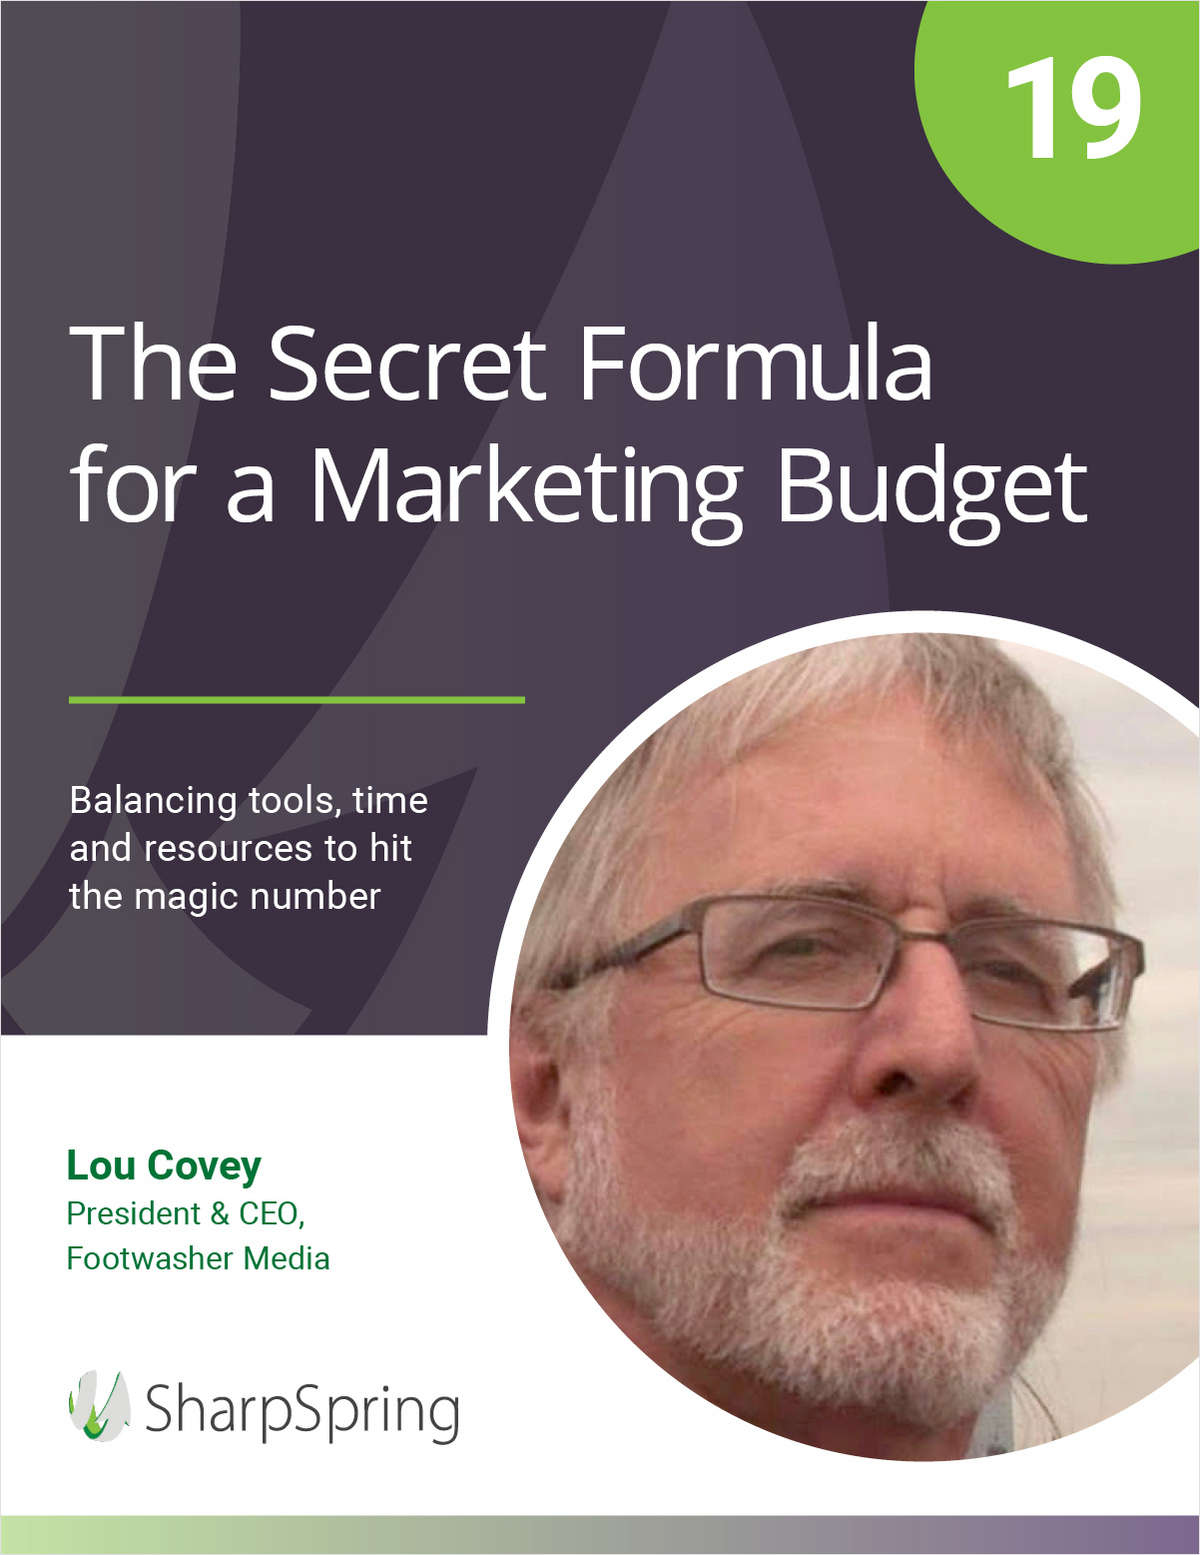 The Secret Formula for a Marketing Budget